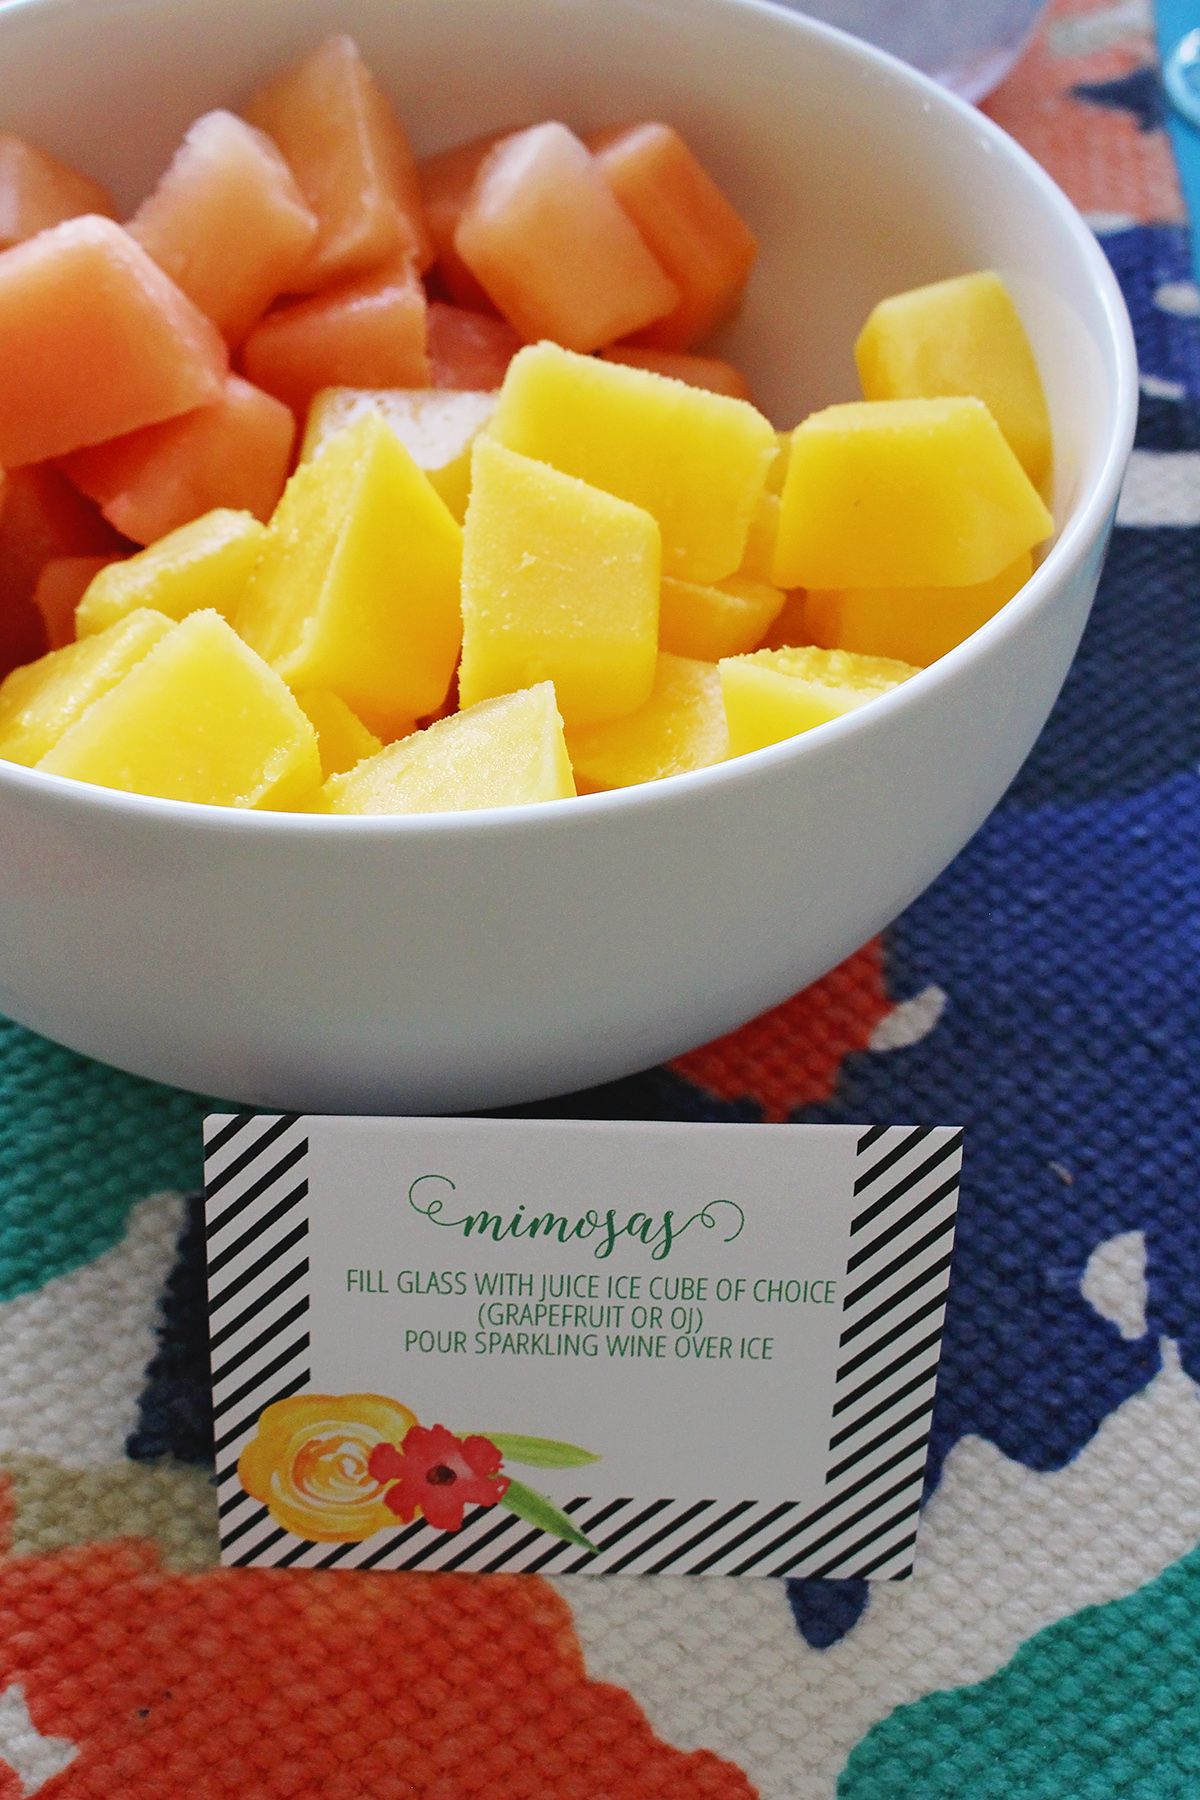 Graduation Party - Freeze Juice ahead of time to make delicious and easy to build mimosas | A Well Crafted Party